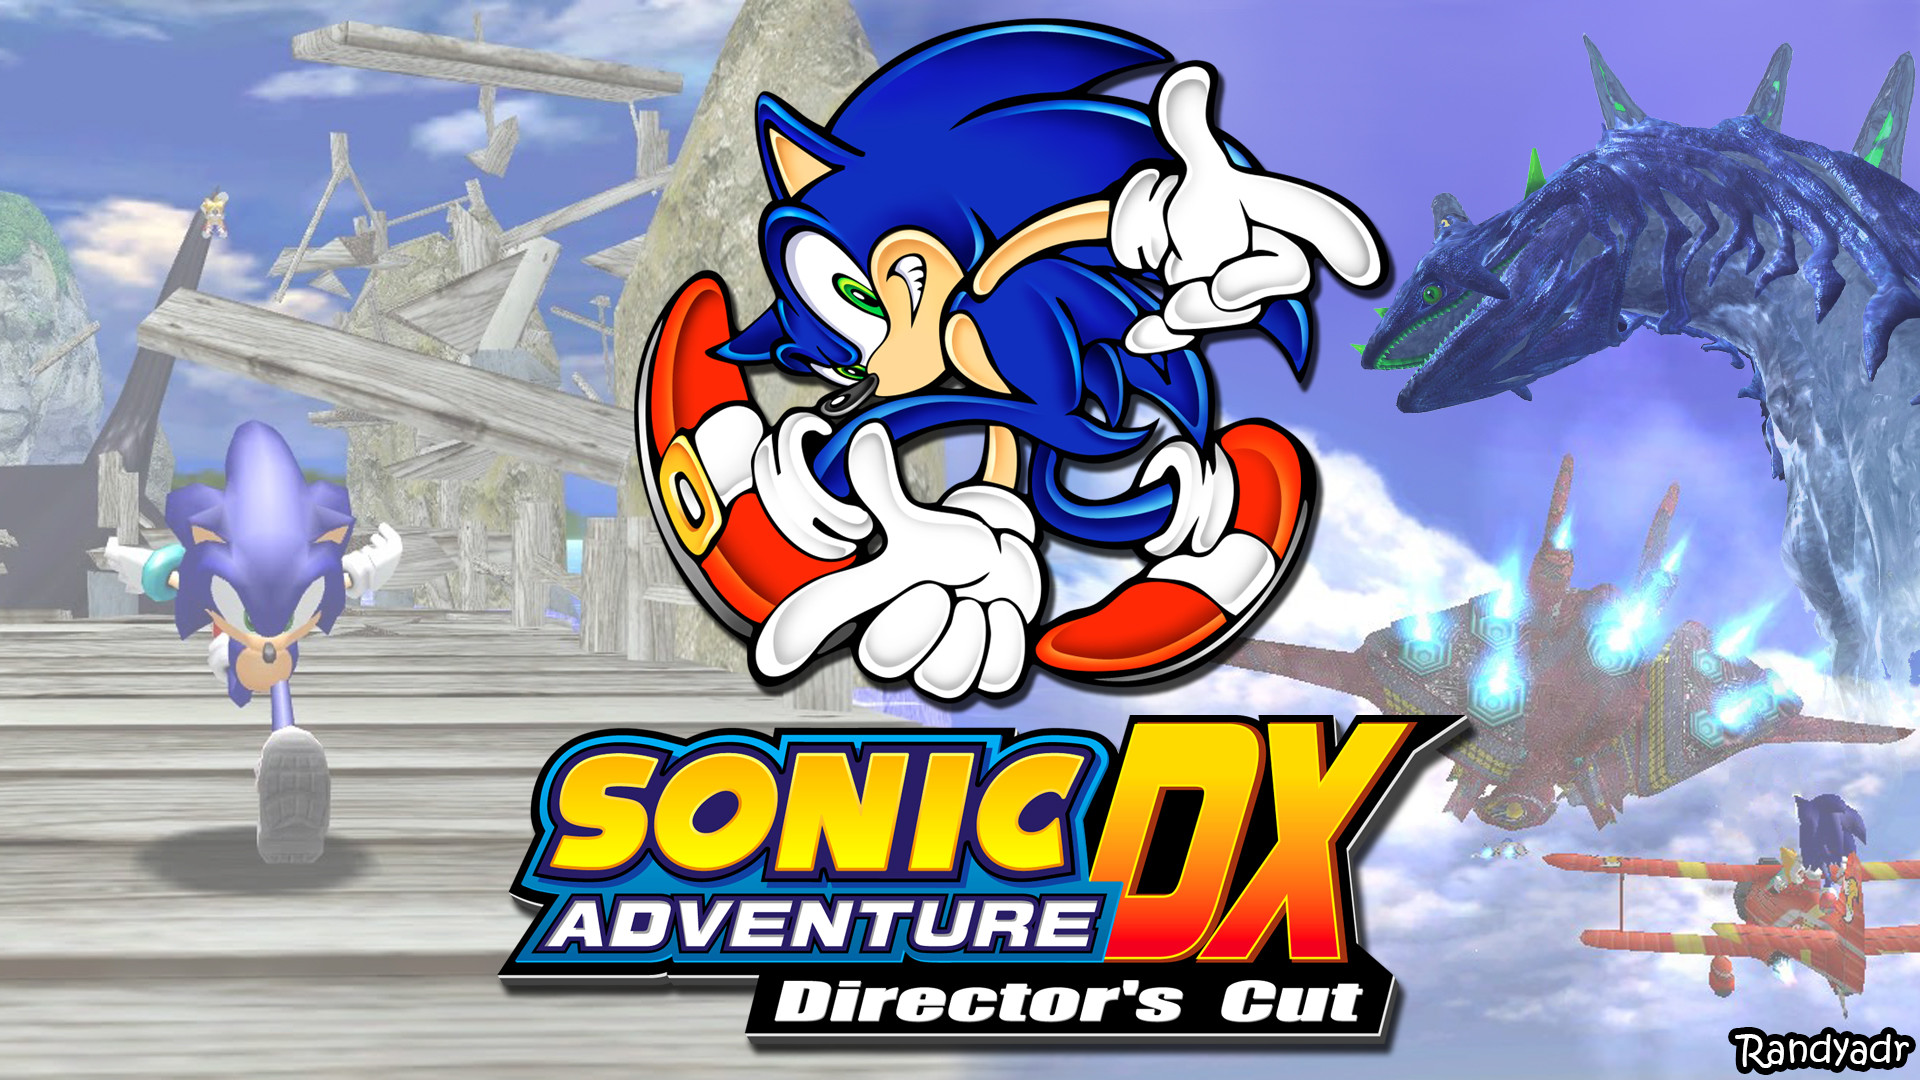 1920x1080 Sonic Adventure Wallpaper Attempt by randyadr Sonic Adventure Wallpaper  Attempt by randyadr